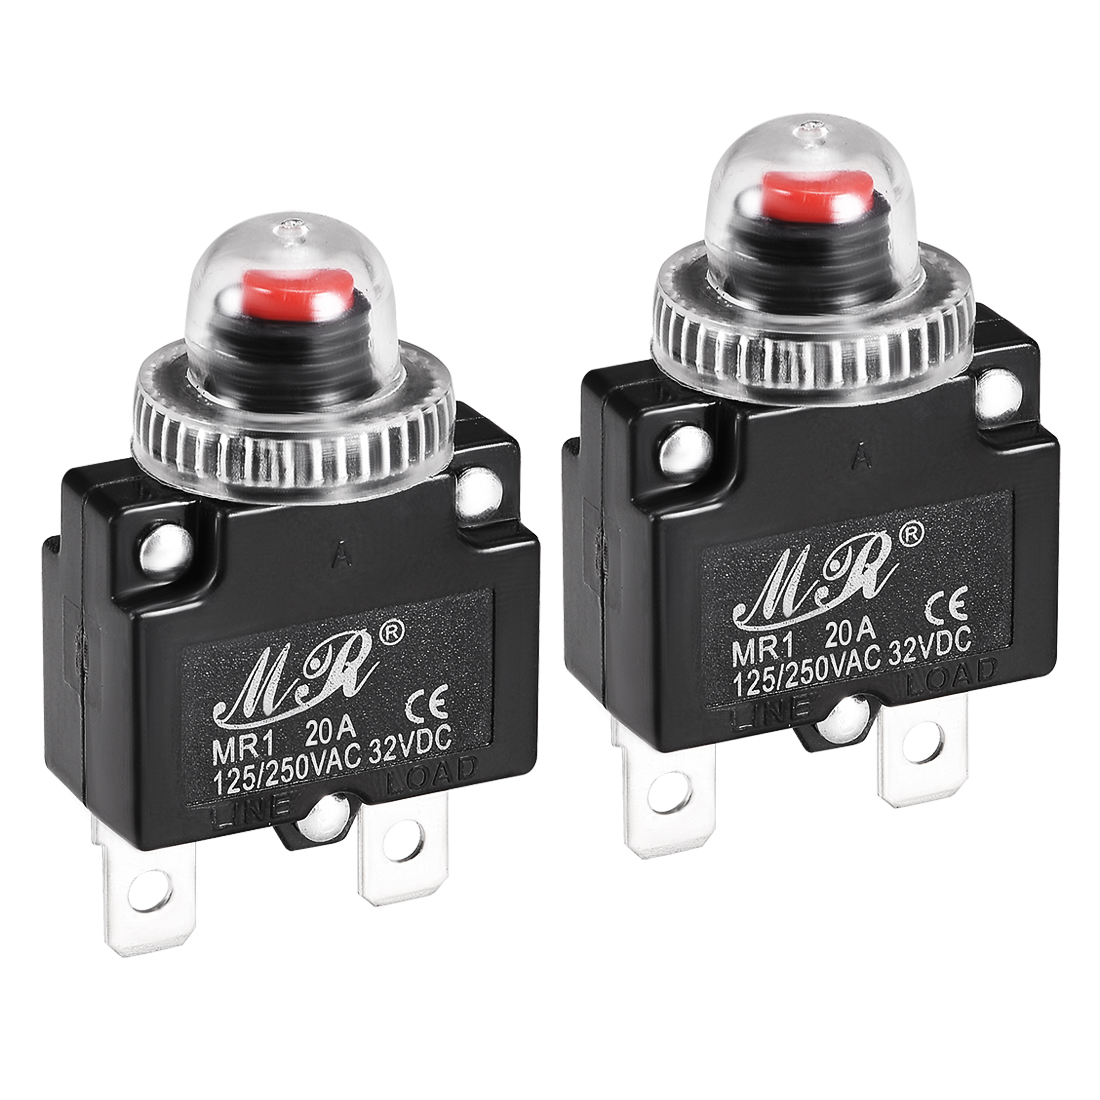 2 Pcs 20A 125/250V Push Button Reset Overload Protector Thermal Circuit Breaker